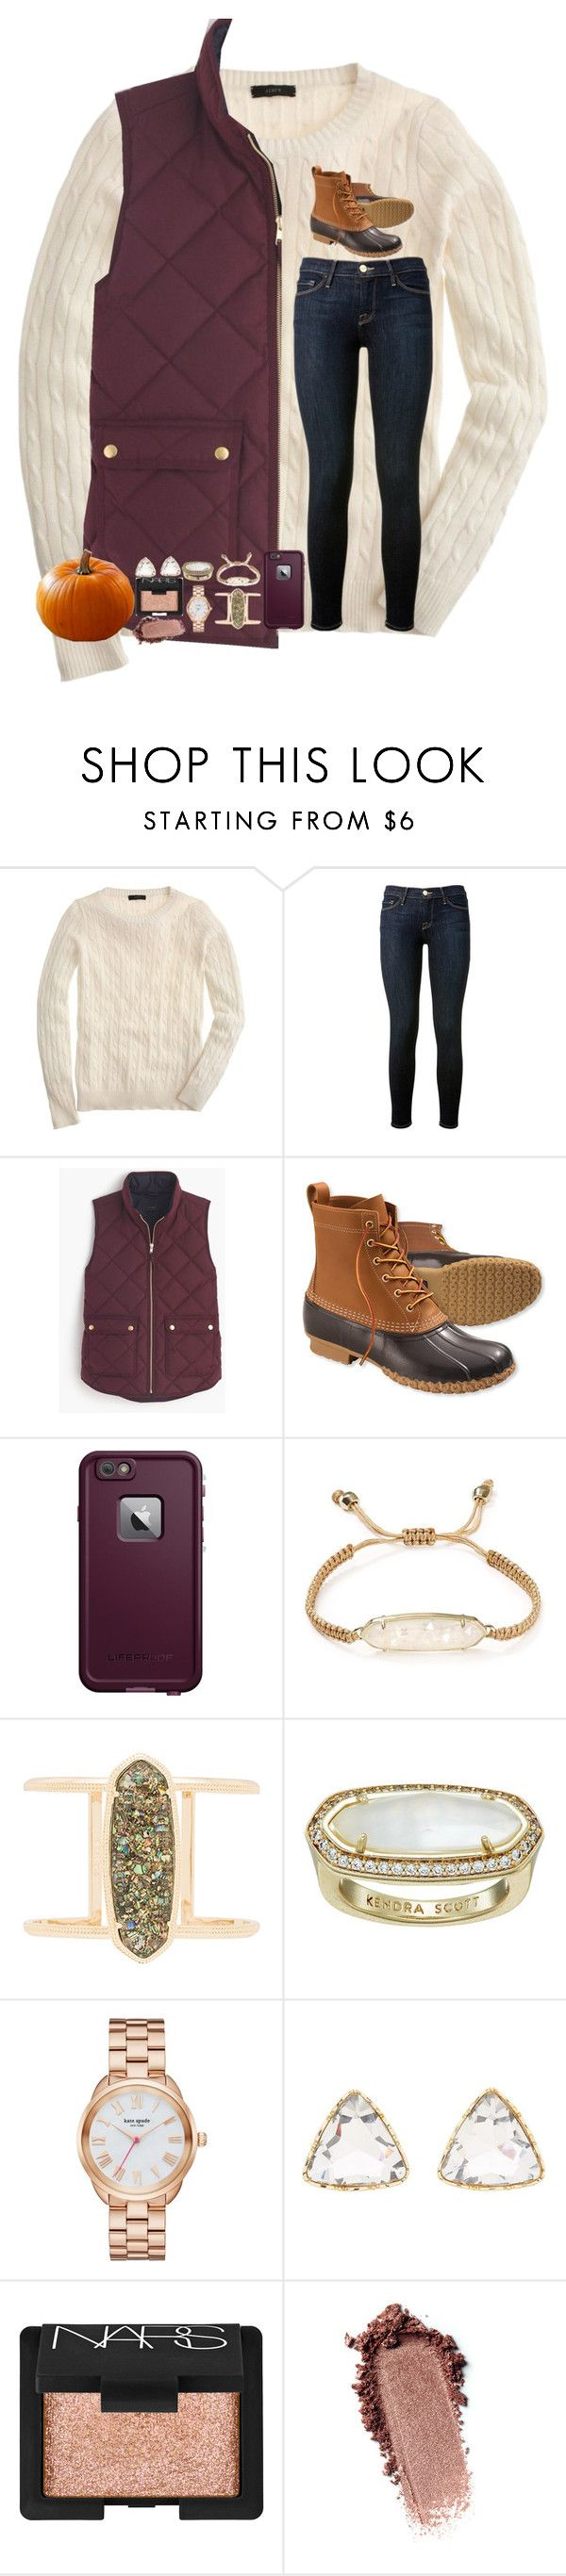 """""""Halloween Contest-Day 2-Pumpkin Patch"""" by tortor7 ❤ liked on Polyvore featuring J.Crew, Frame Denim, L.L.Bean, LifeProof, Kendra Scott, Kate Spade, Charlotte Russe, NARS Cosmetics and kennshalloweencontest"""